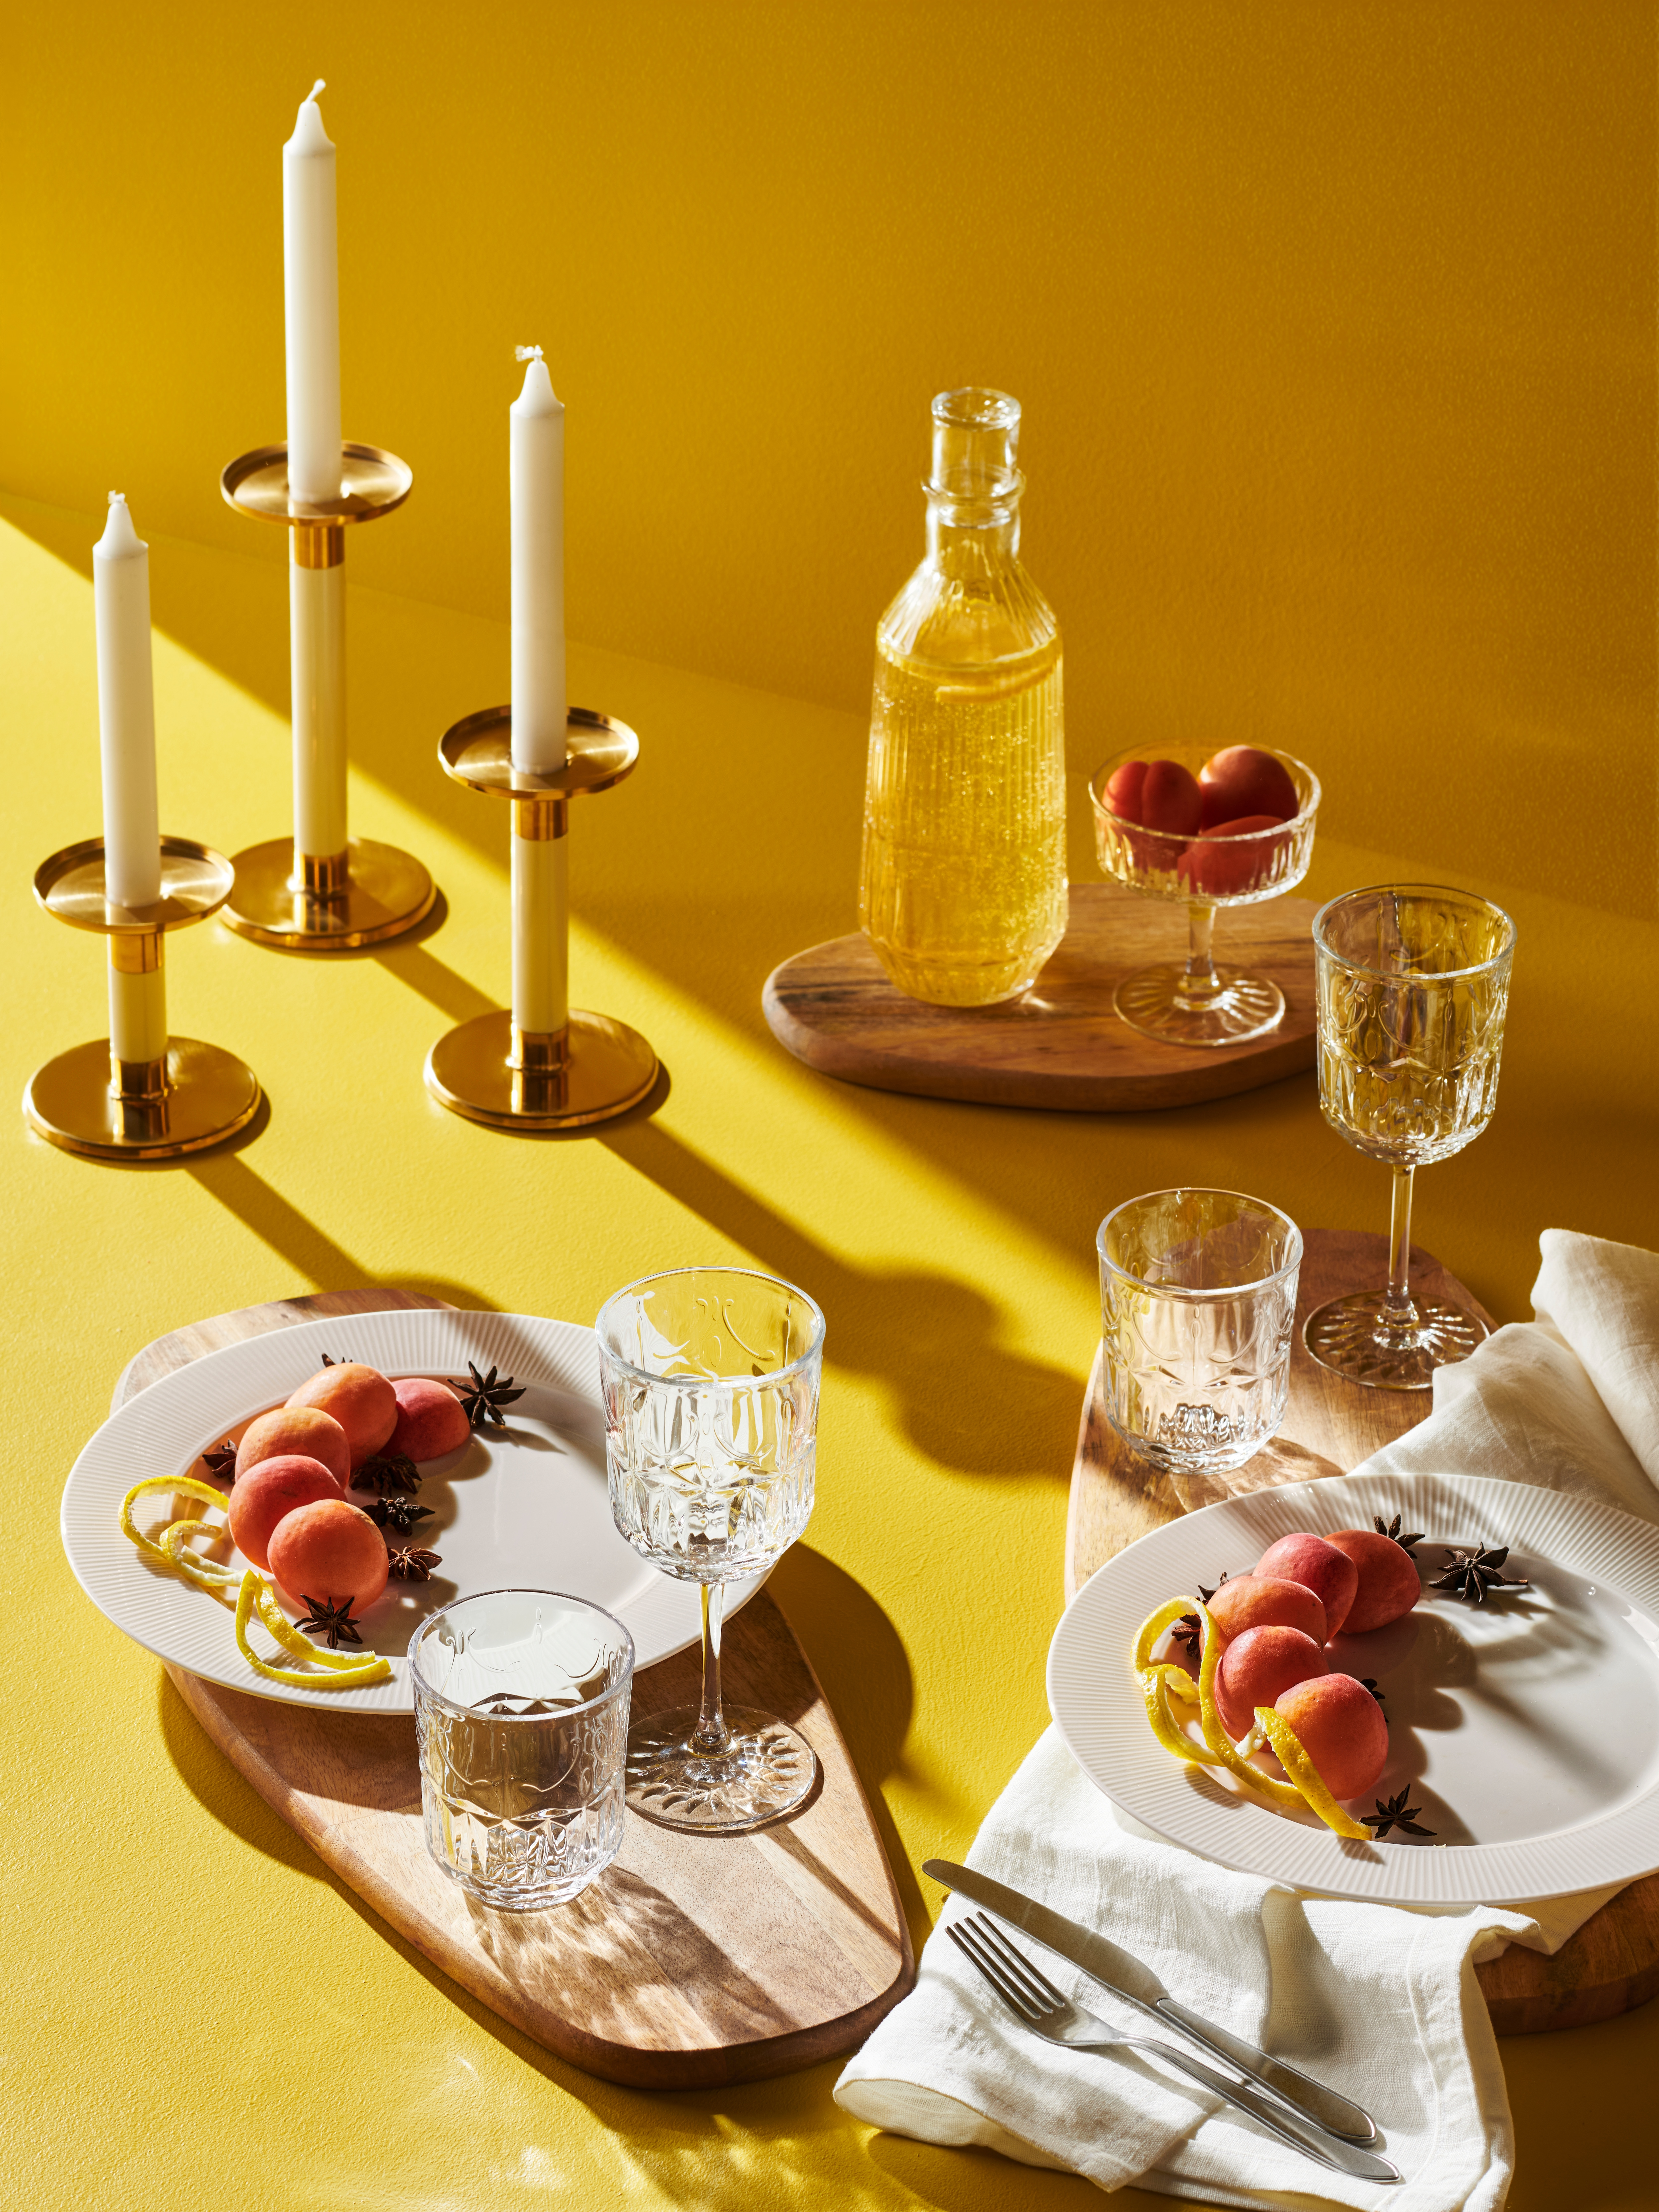 SÄLLSKAPLIG cut glasses and carafe on wooden boards on a yellow surface with peaches on plates and candles in gold holders.